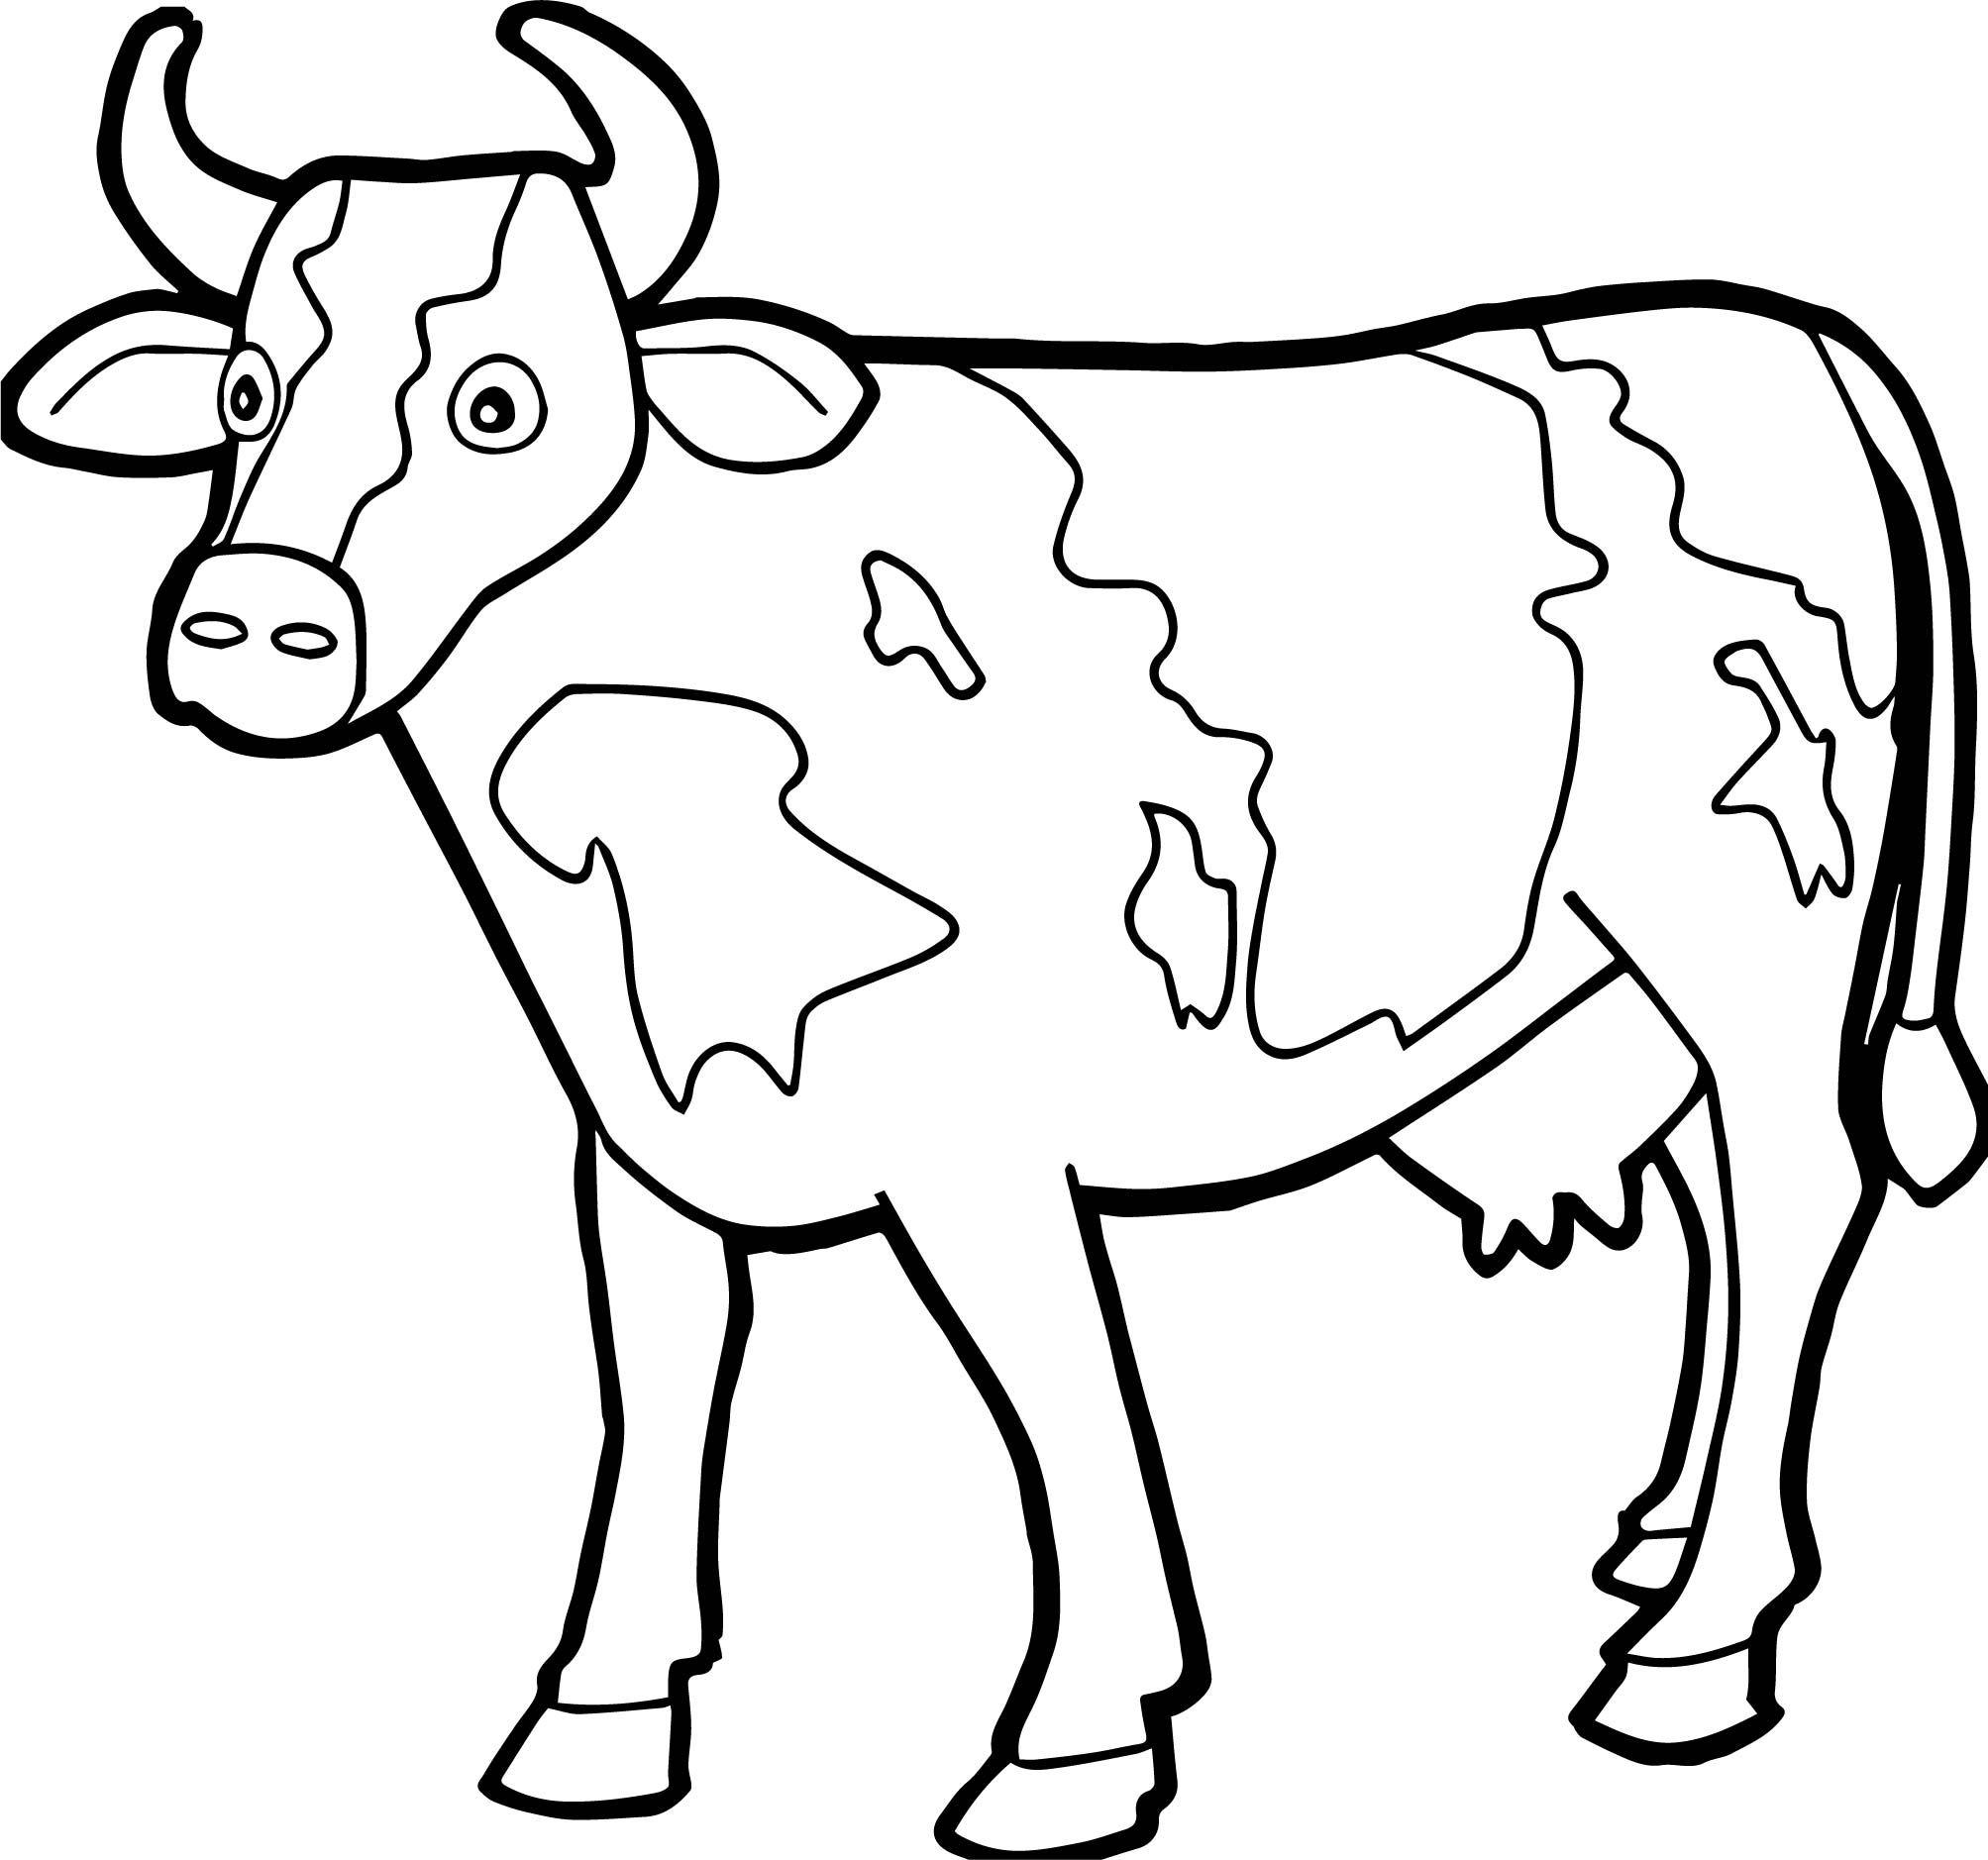 Nice Farm Animal Staying Cow Coloring Page Farm Animal Coloring Pages Cow Coloring Pages Animal Coloring Pages